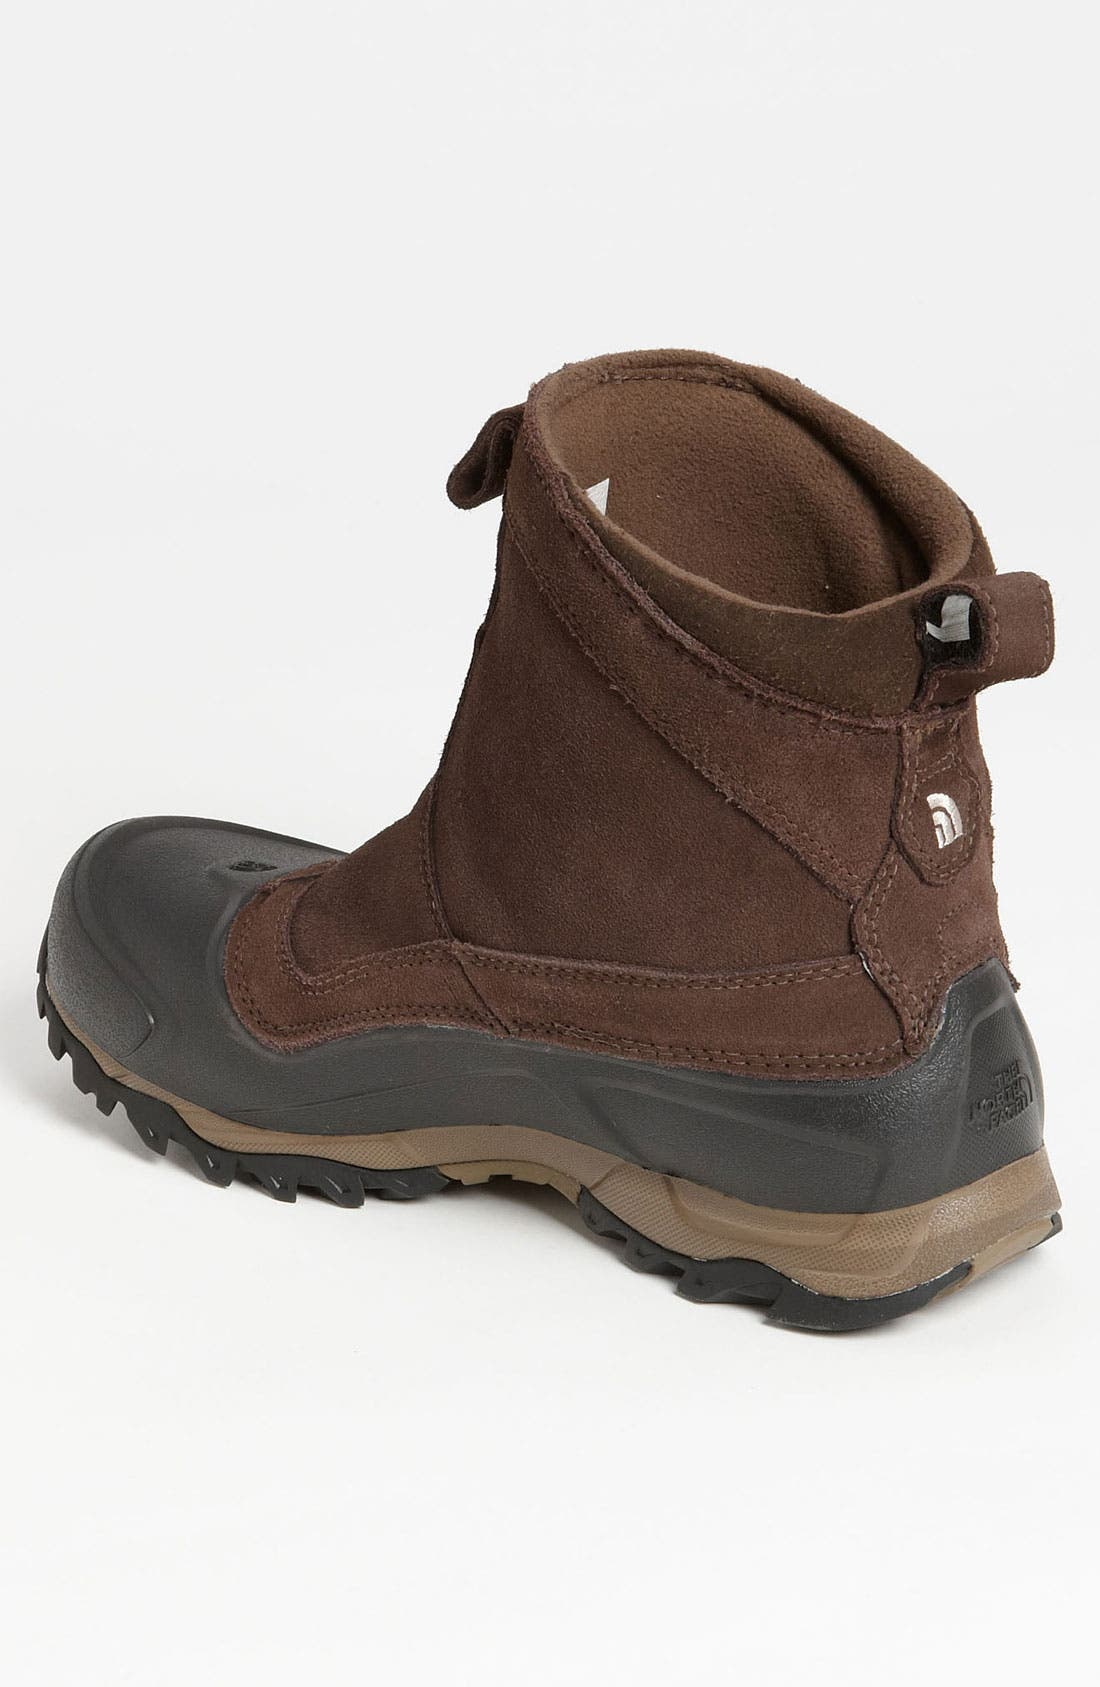 Alternate Image 2  - The North Face 'Snowfuse' Snow Boot